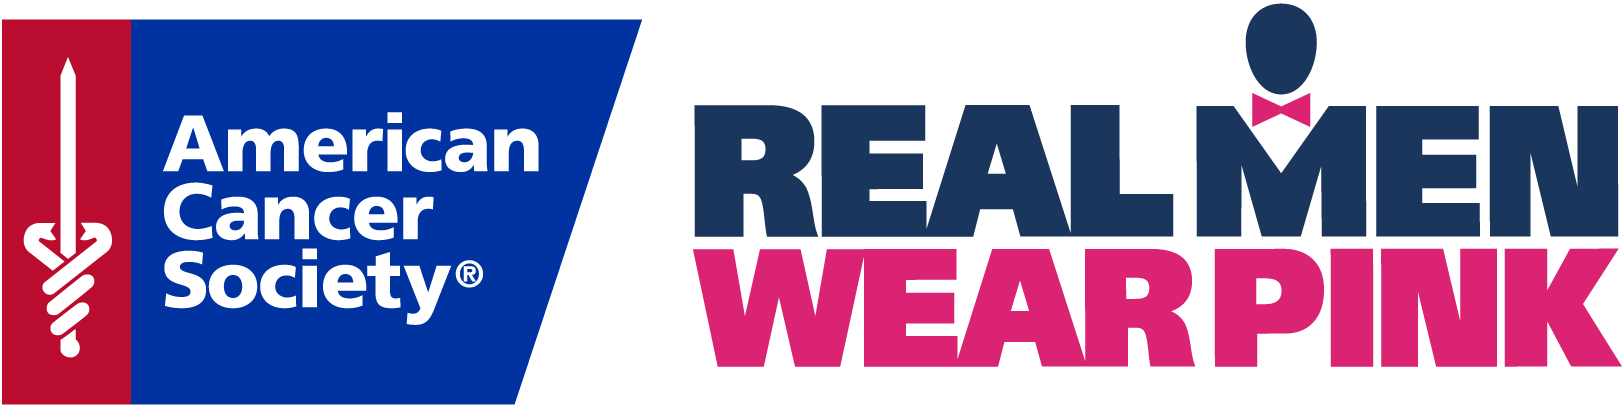 This is the logo for the American Cancer Society's Real Men Wear Pink campaign. It's blue and pink lettering on a white background.